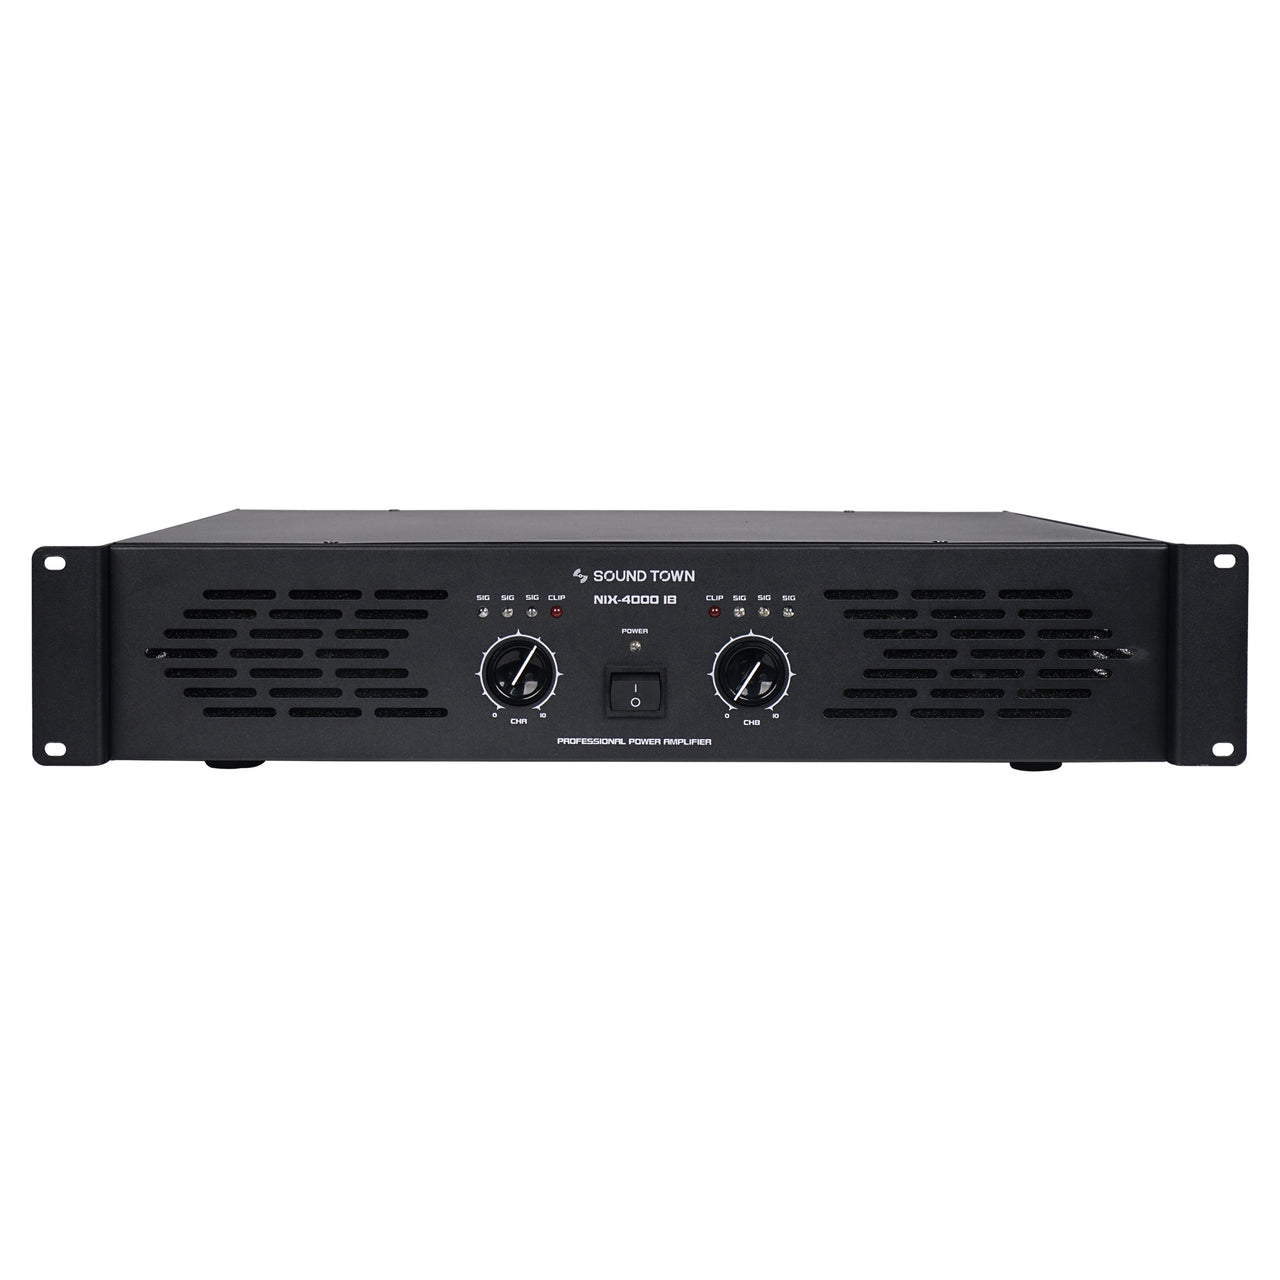 Sound Town NIX-4000IB Professional Dual-Channel, 2 x 1000W at 4-ohm, 4000W Peak Output Power Amplifier - Front Panel